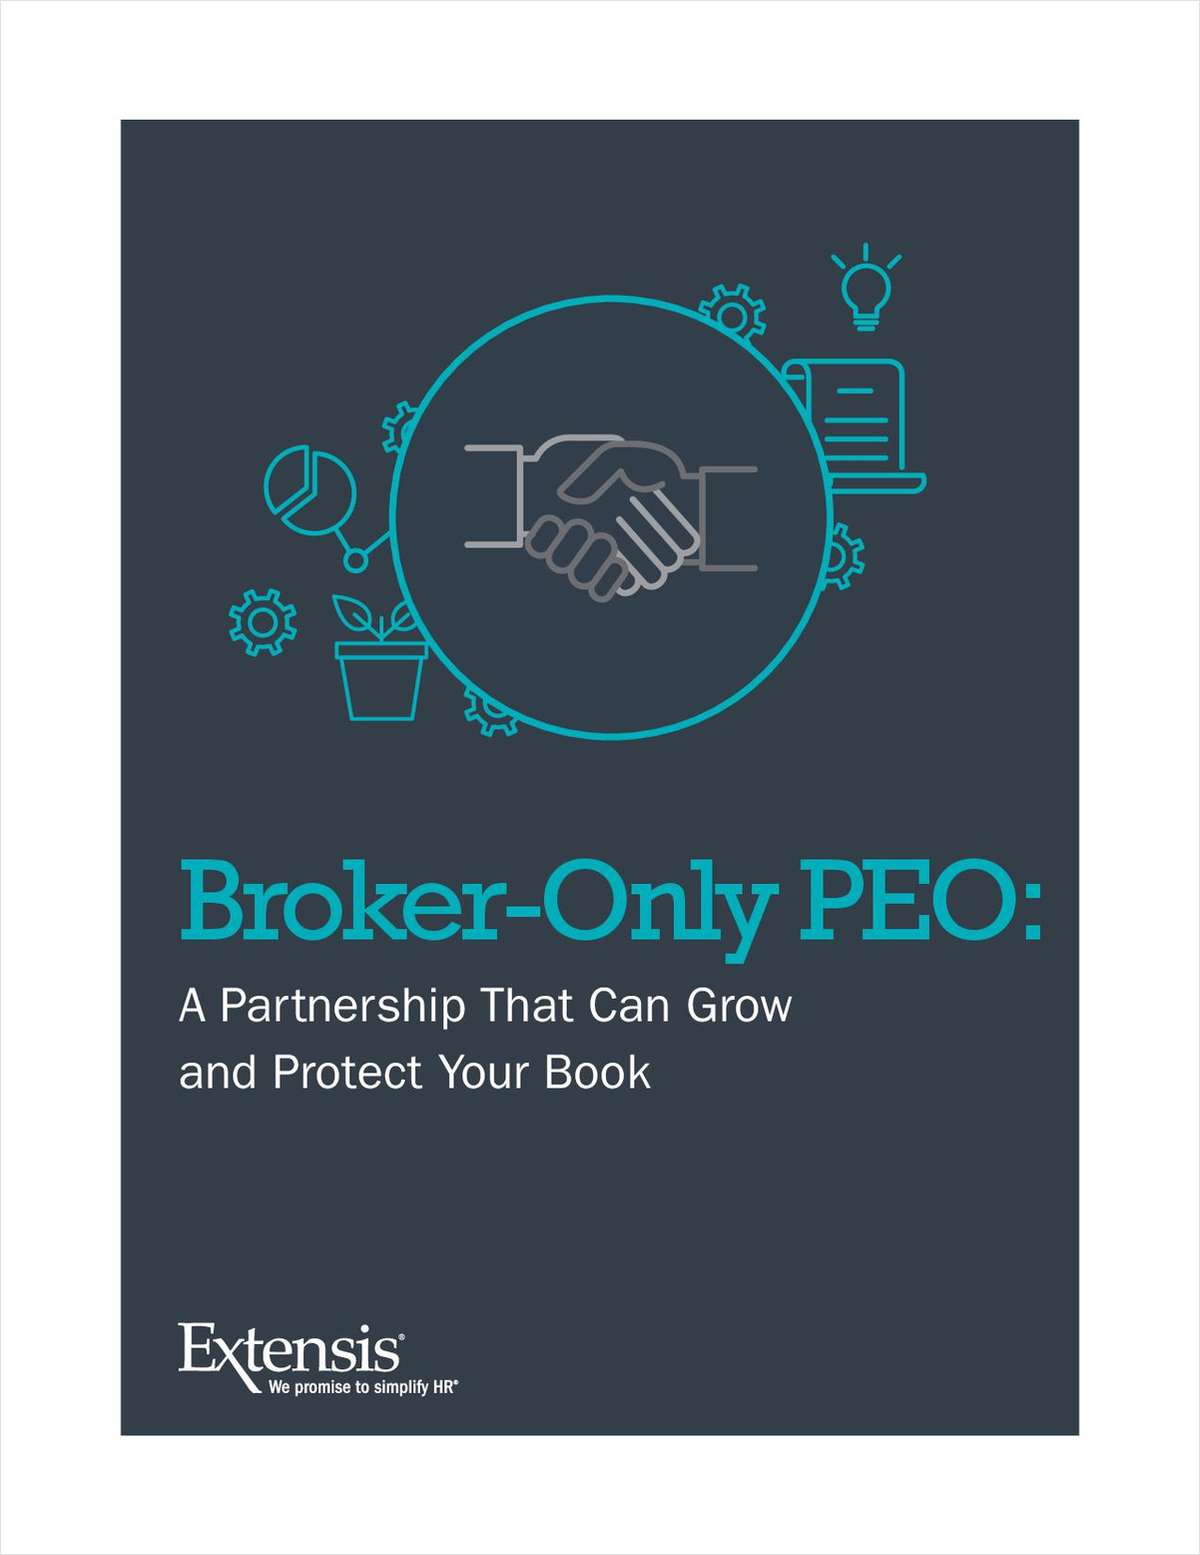 Broker-Only PEO: A Partnership That Can Grow and Protect Your Book